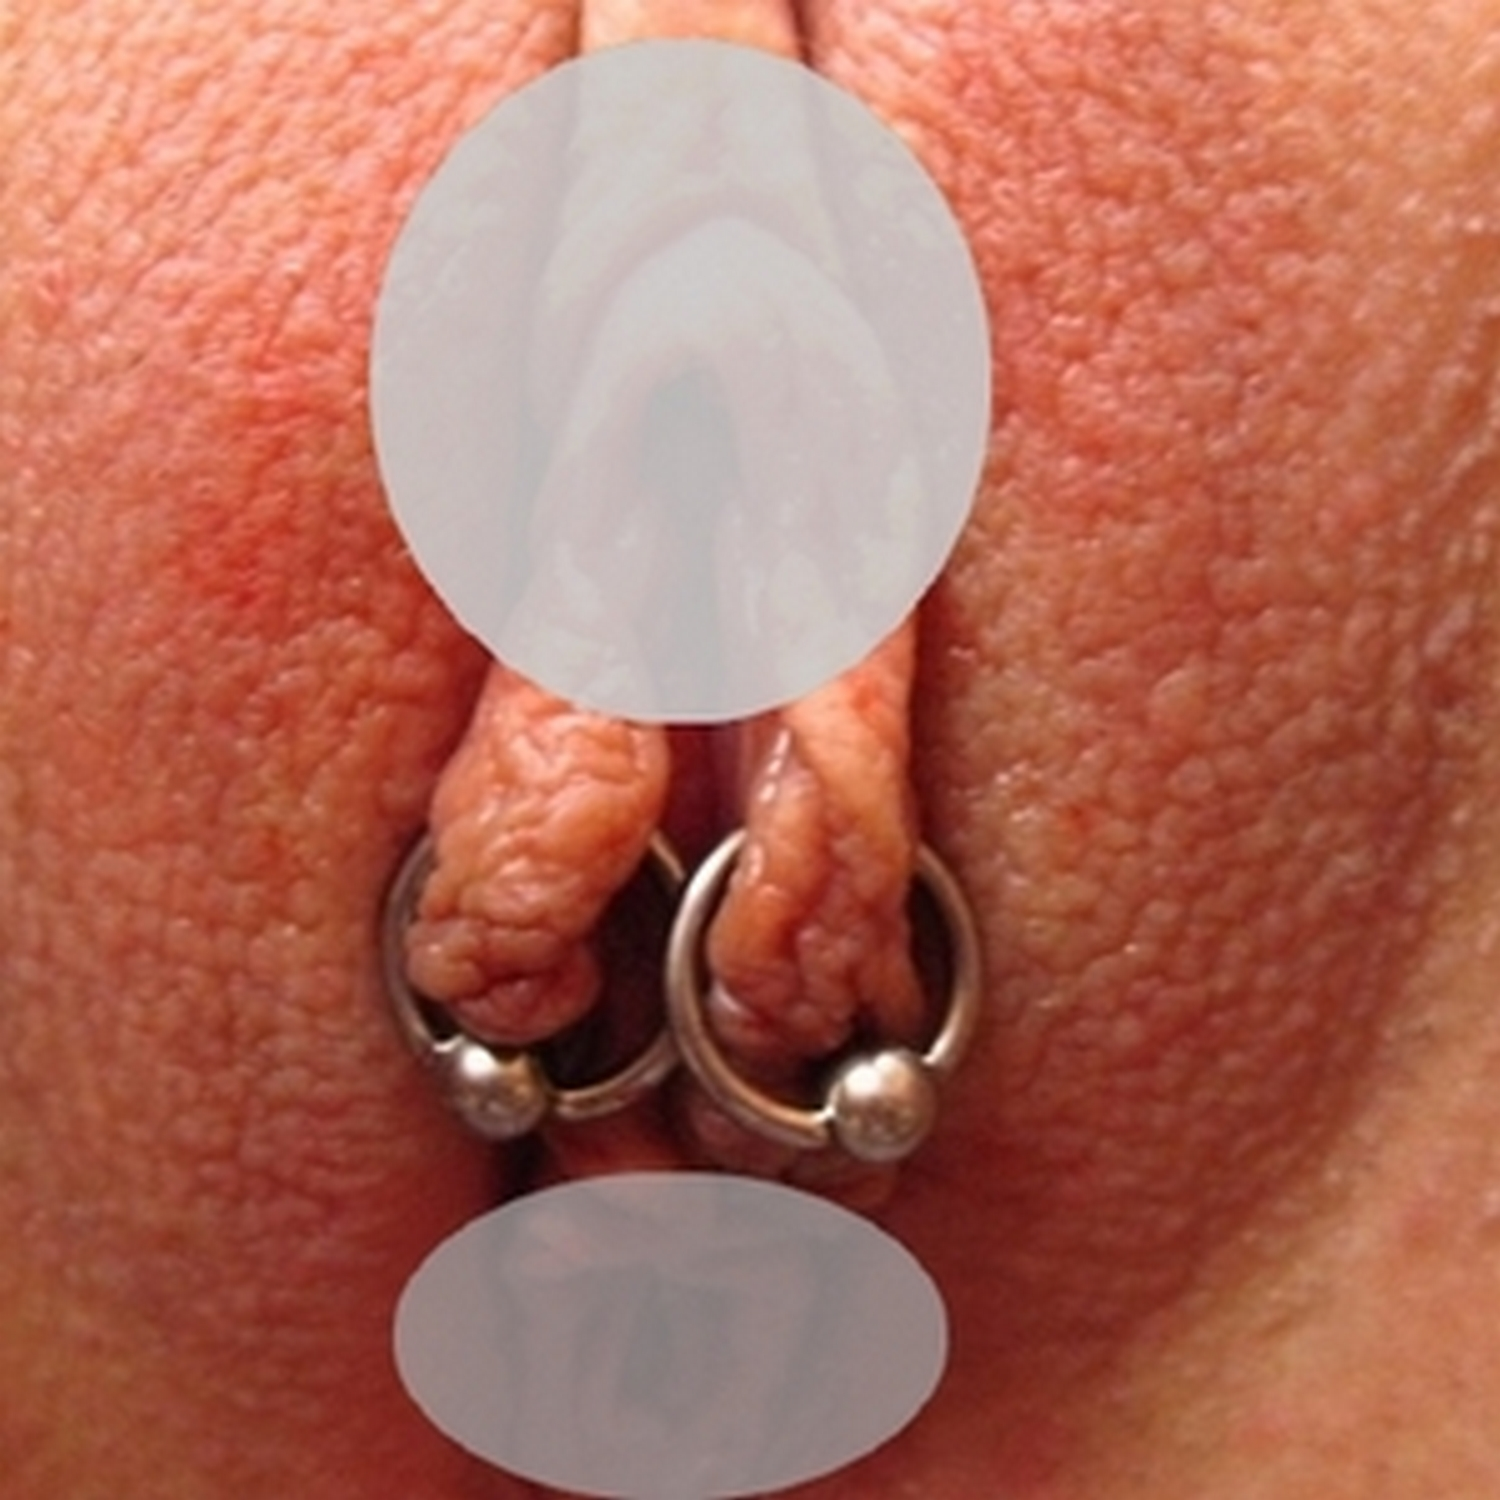 labia,klitoris,piercing